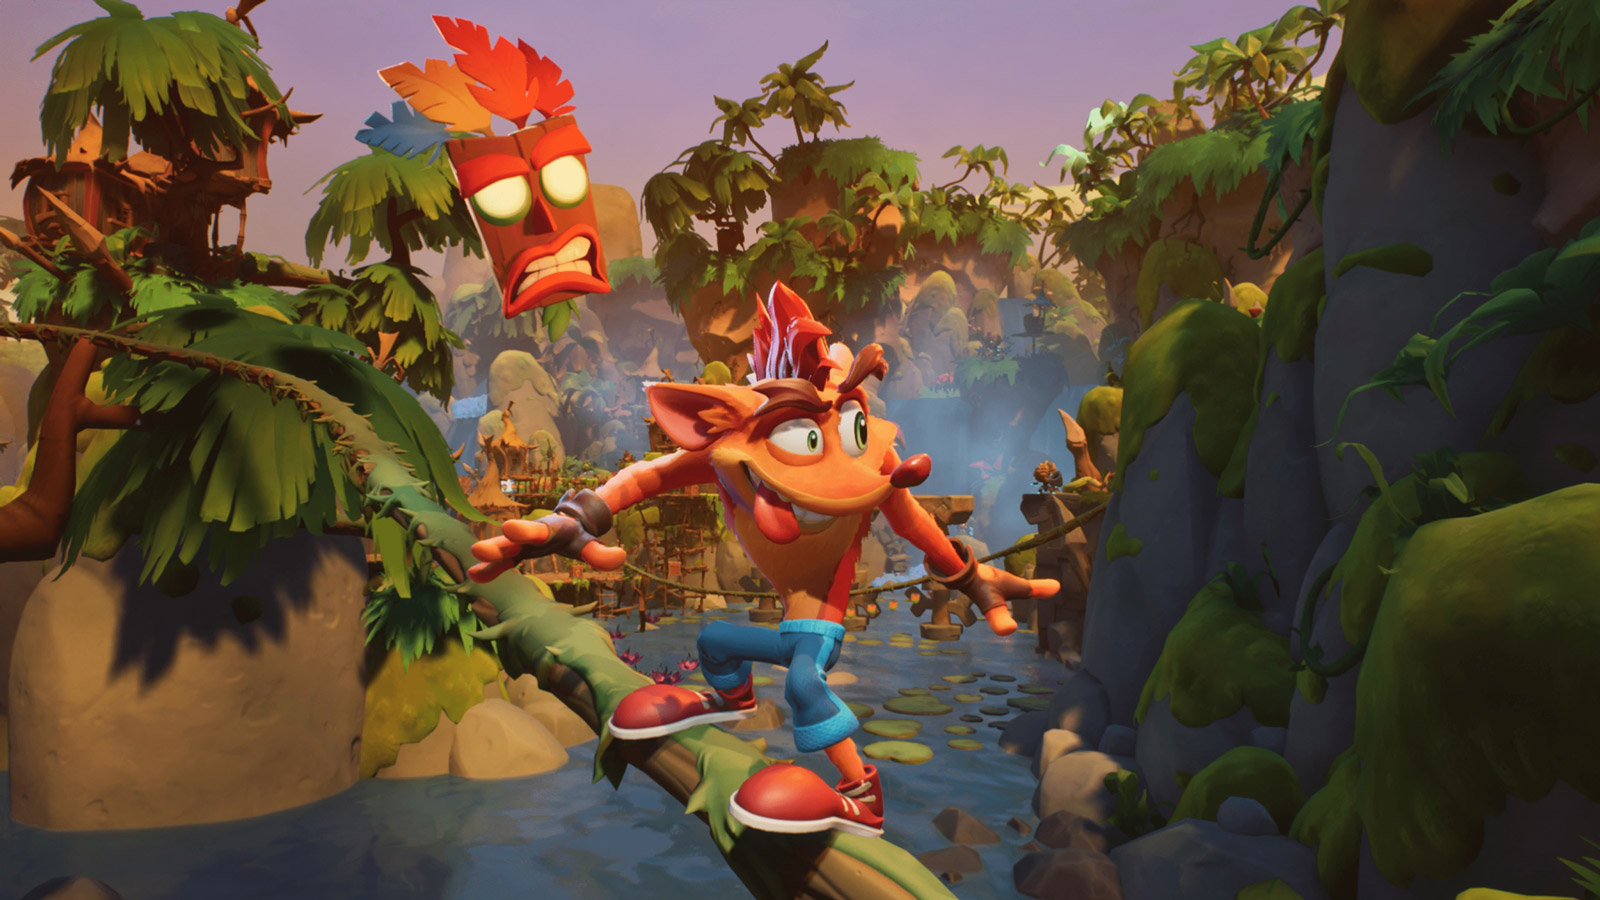 Crash Bandicoot 4: It's About Time Wallpaper in 1600x900